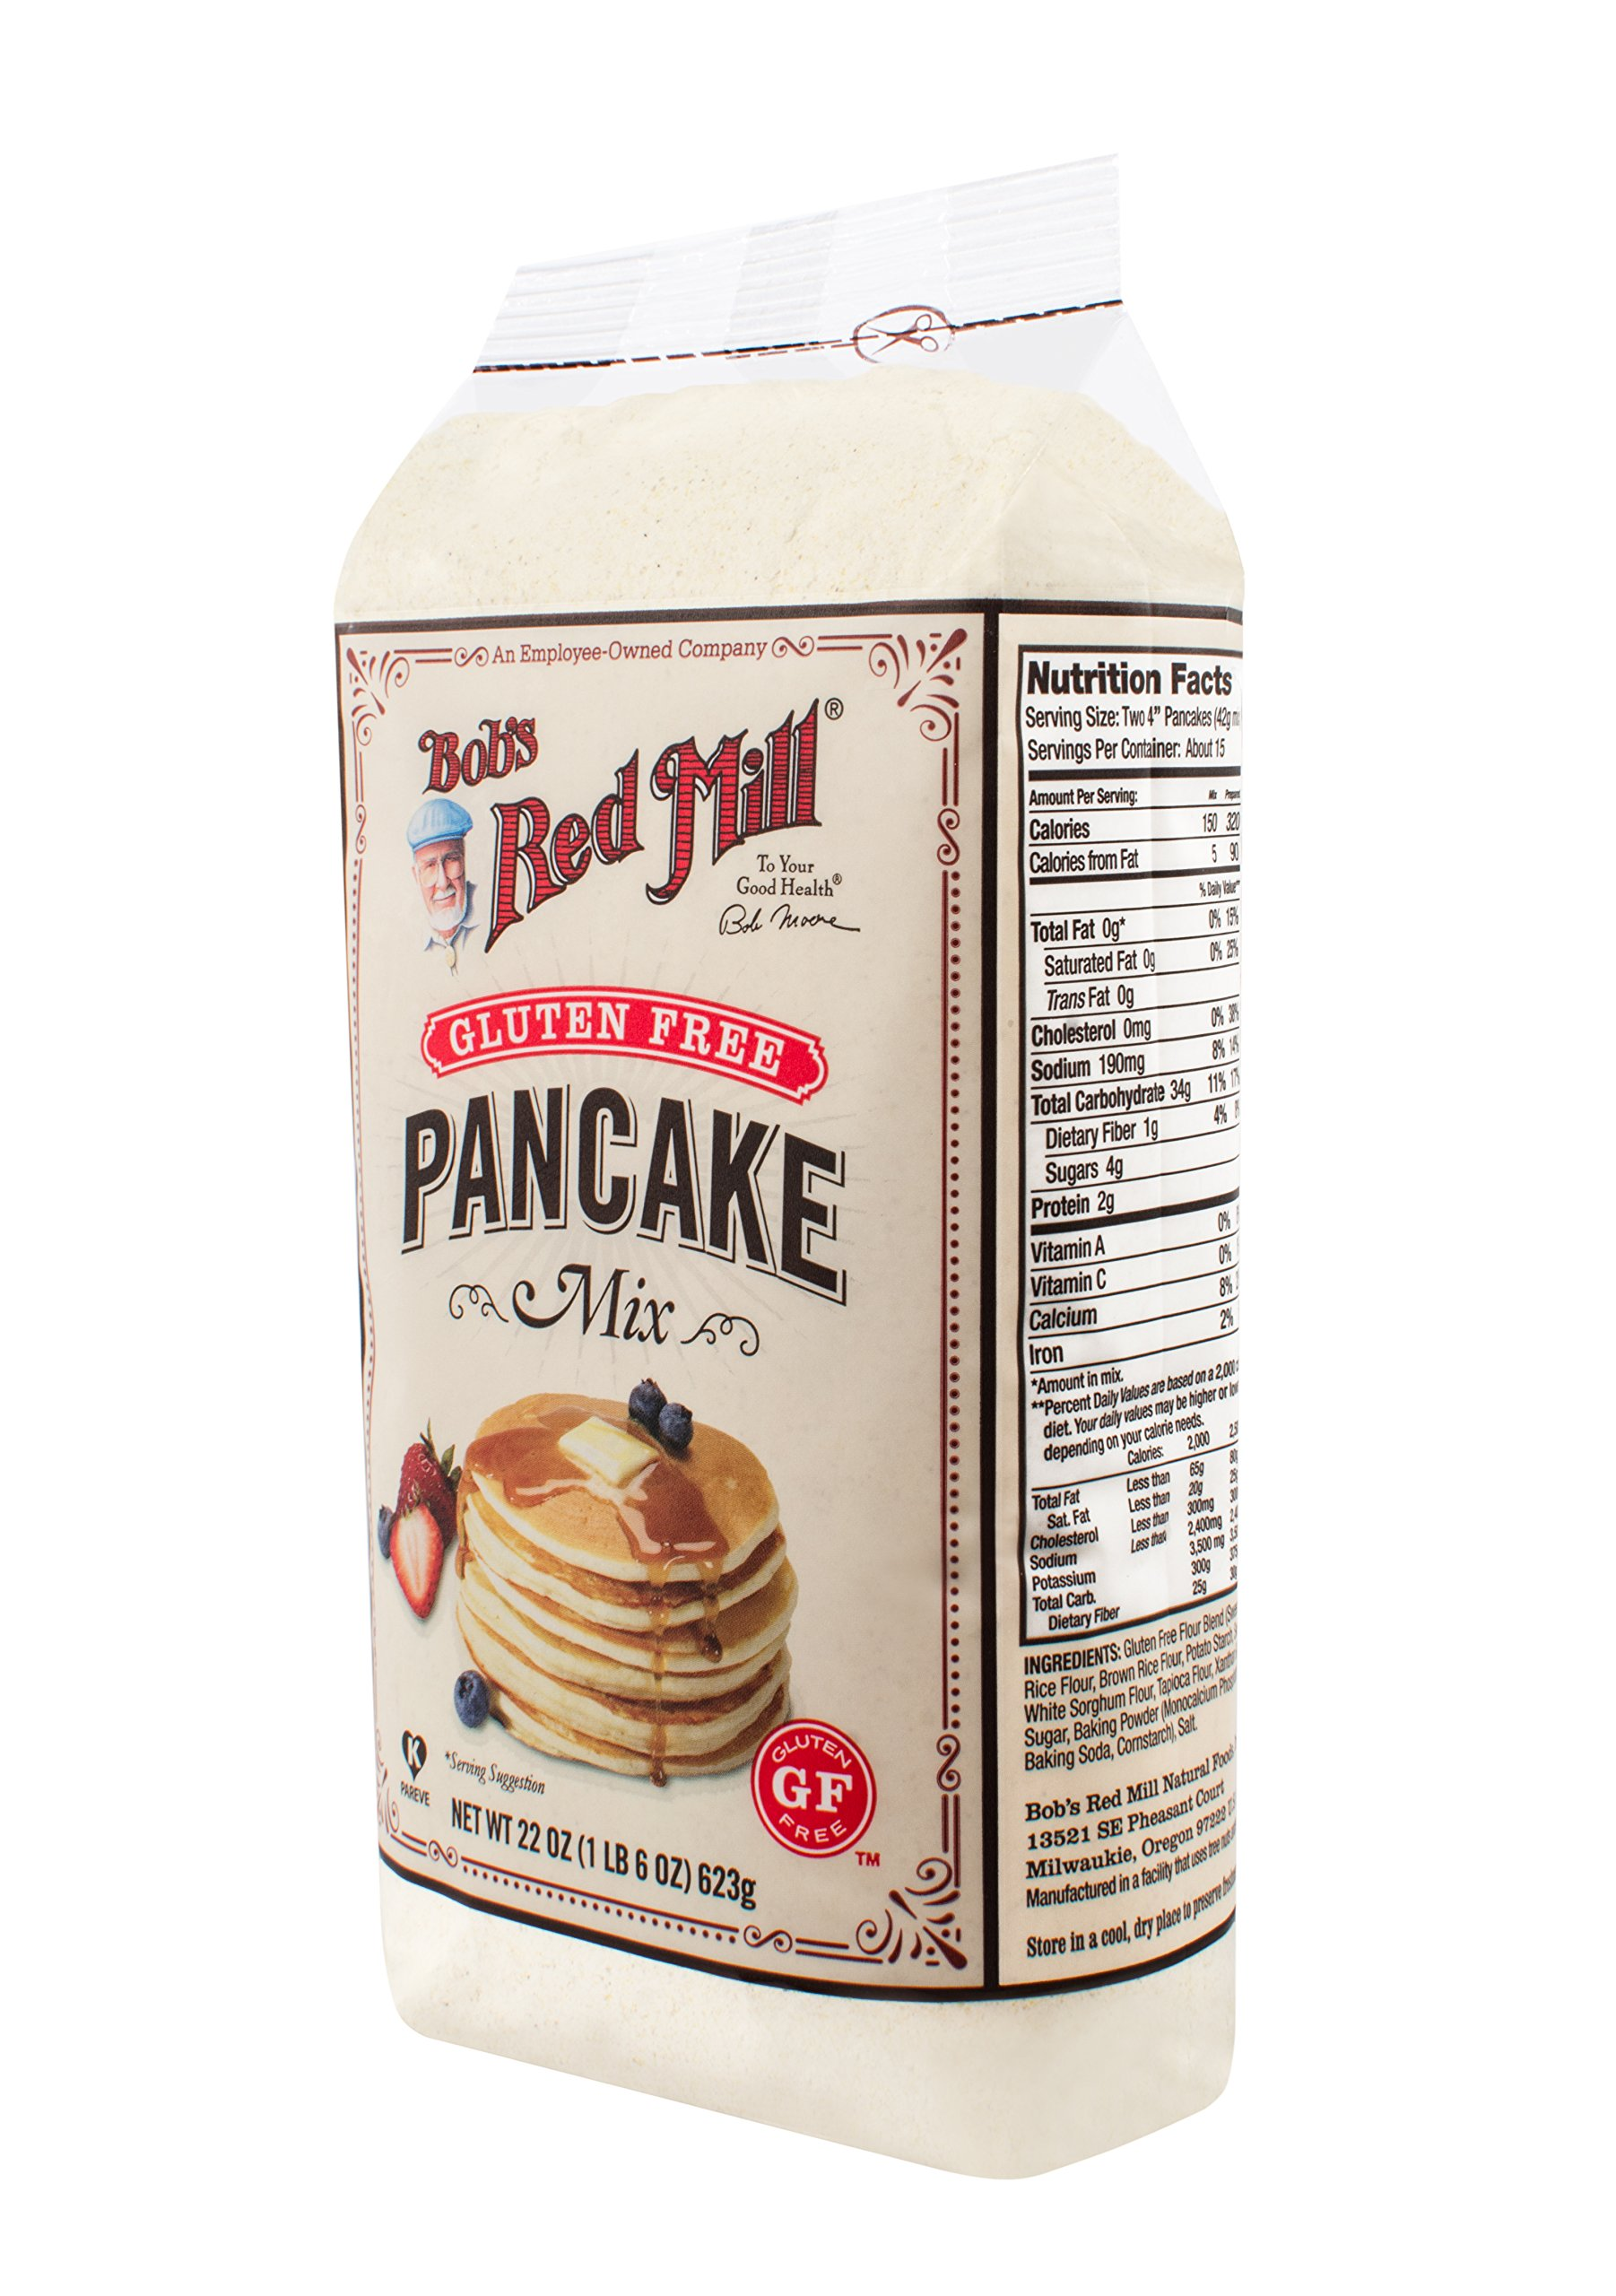 Bob's Red Mill, Pancake Mix, 22 oz by Bob's Red Mill (Image #6)